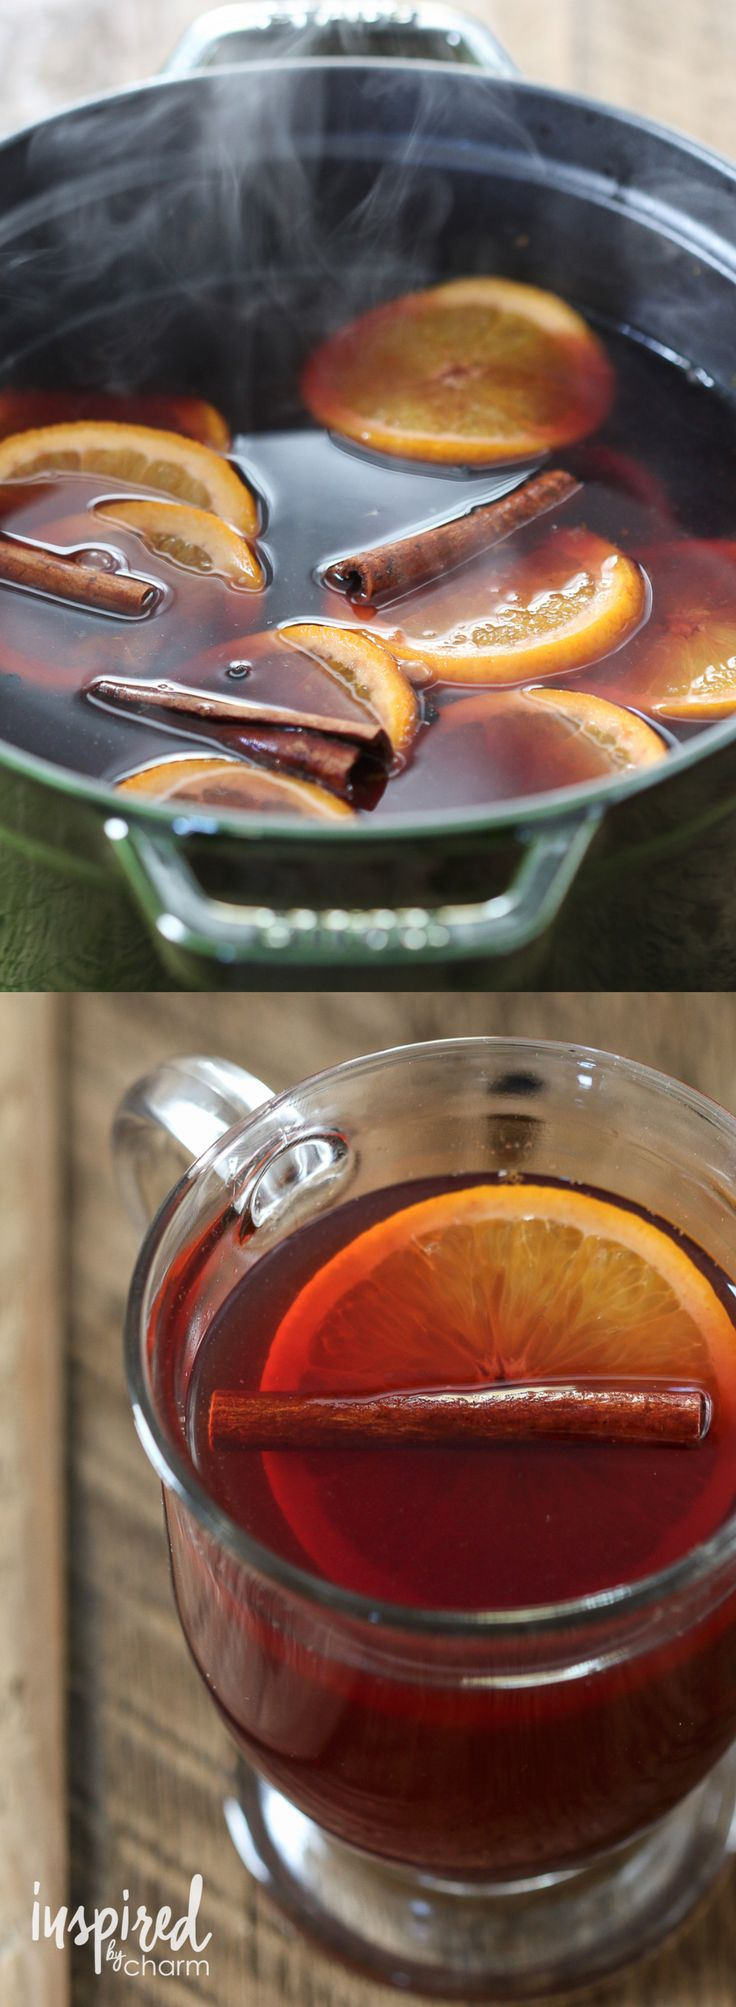 Mulled Wine Recipe | inspiredbycharm.com #fall #cocktail #wine